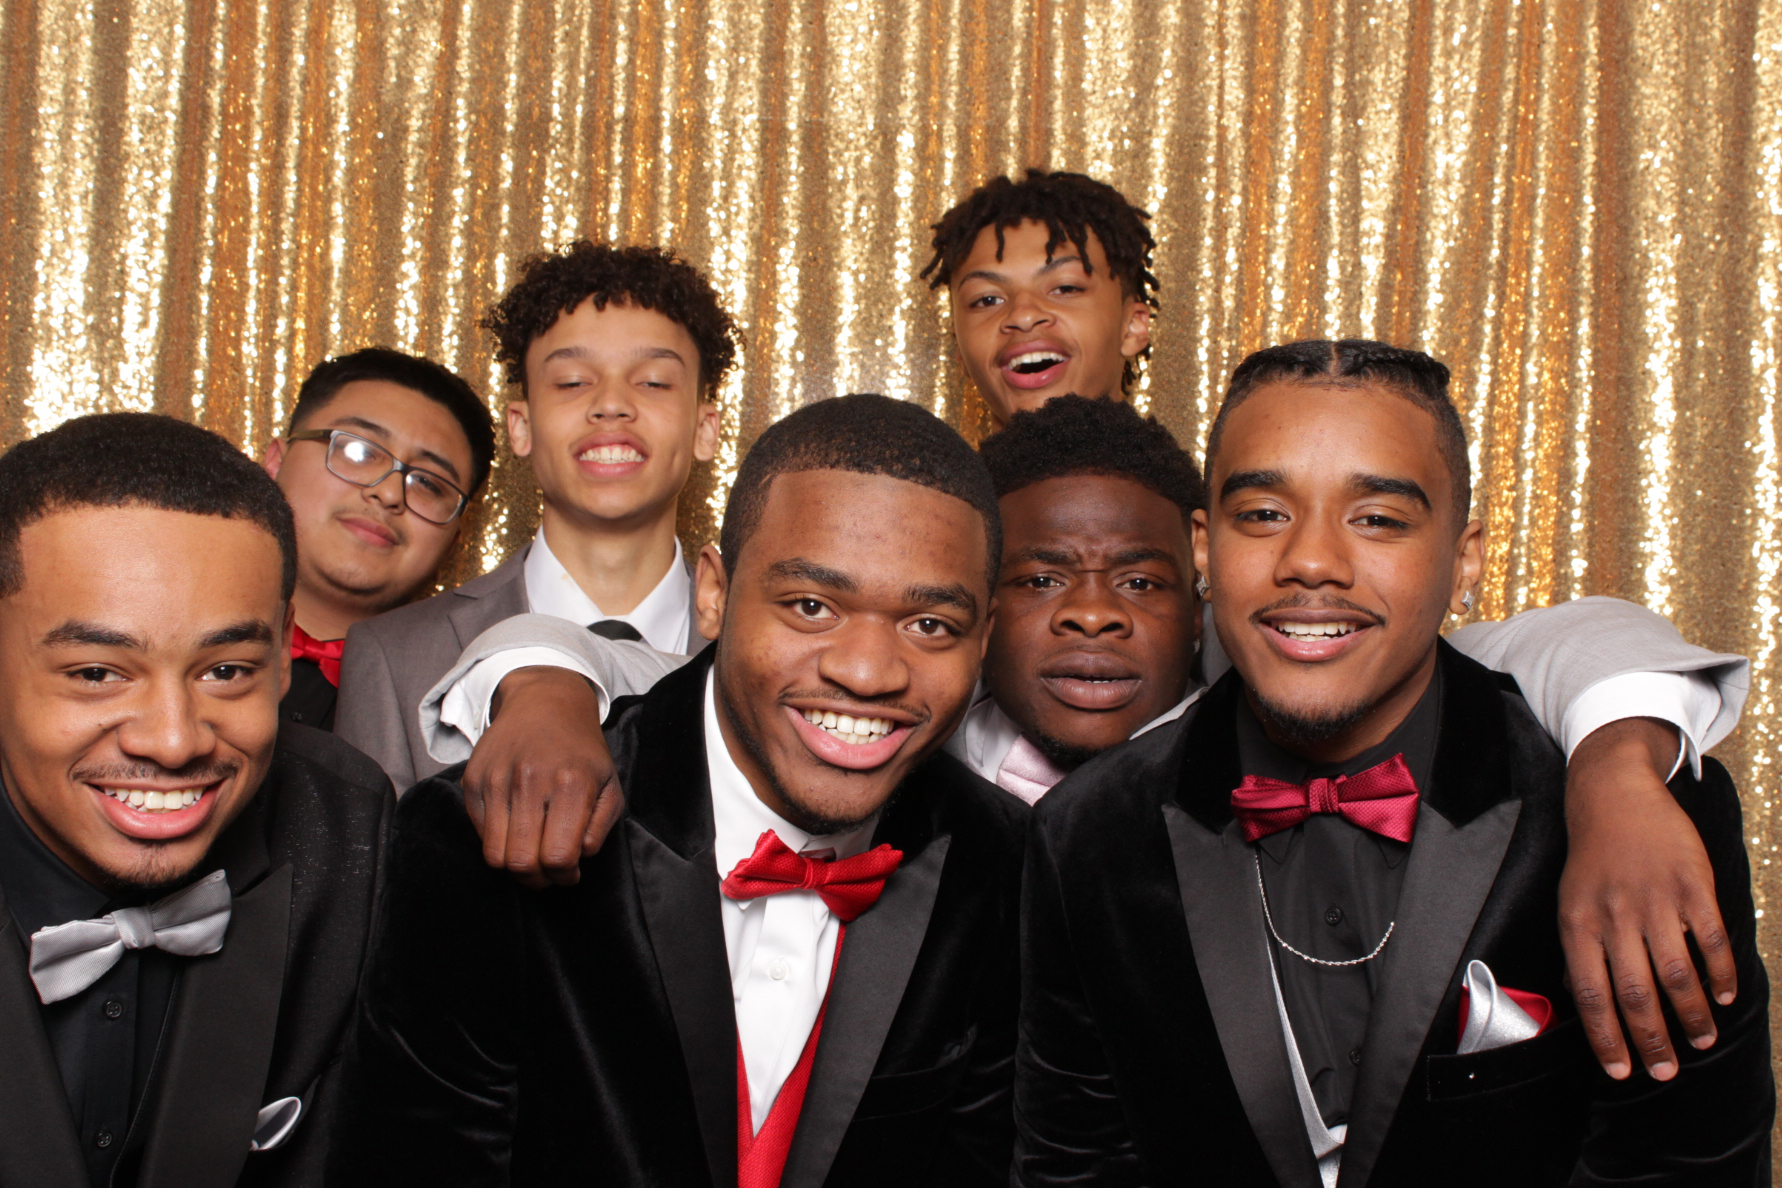 Como Sr. High School Prom 2019 - Album 1 of 2